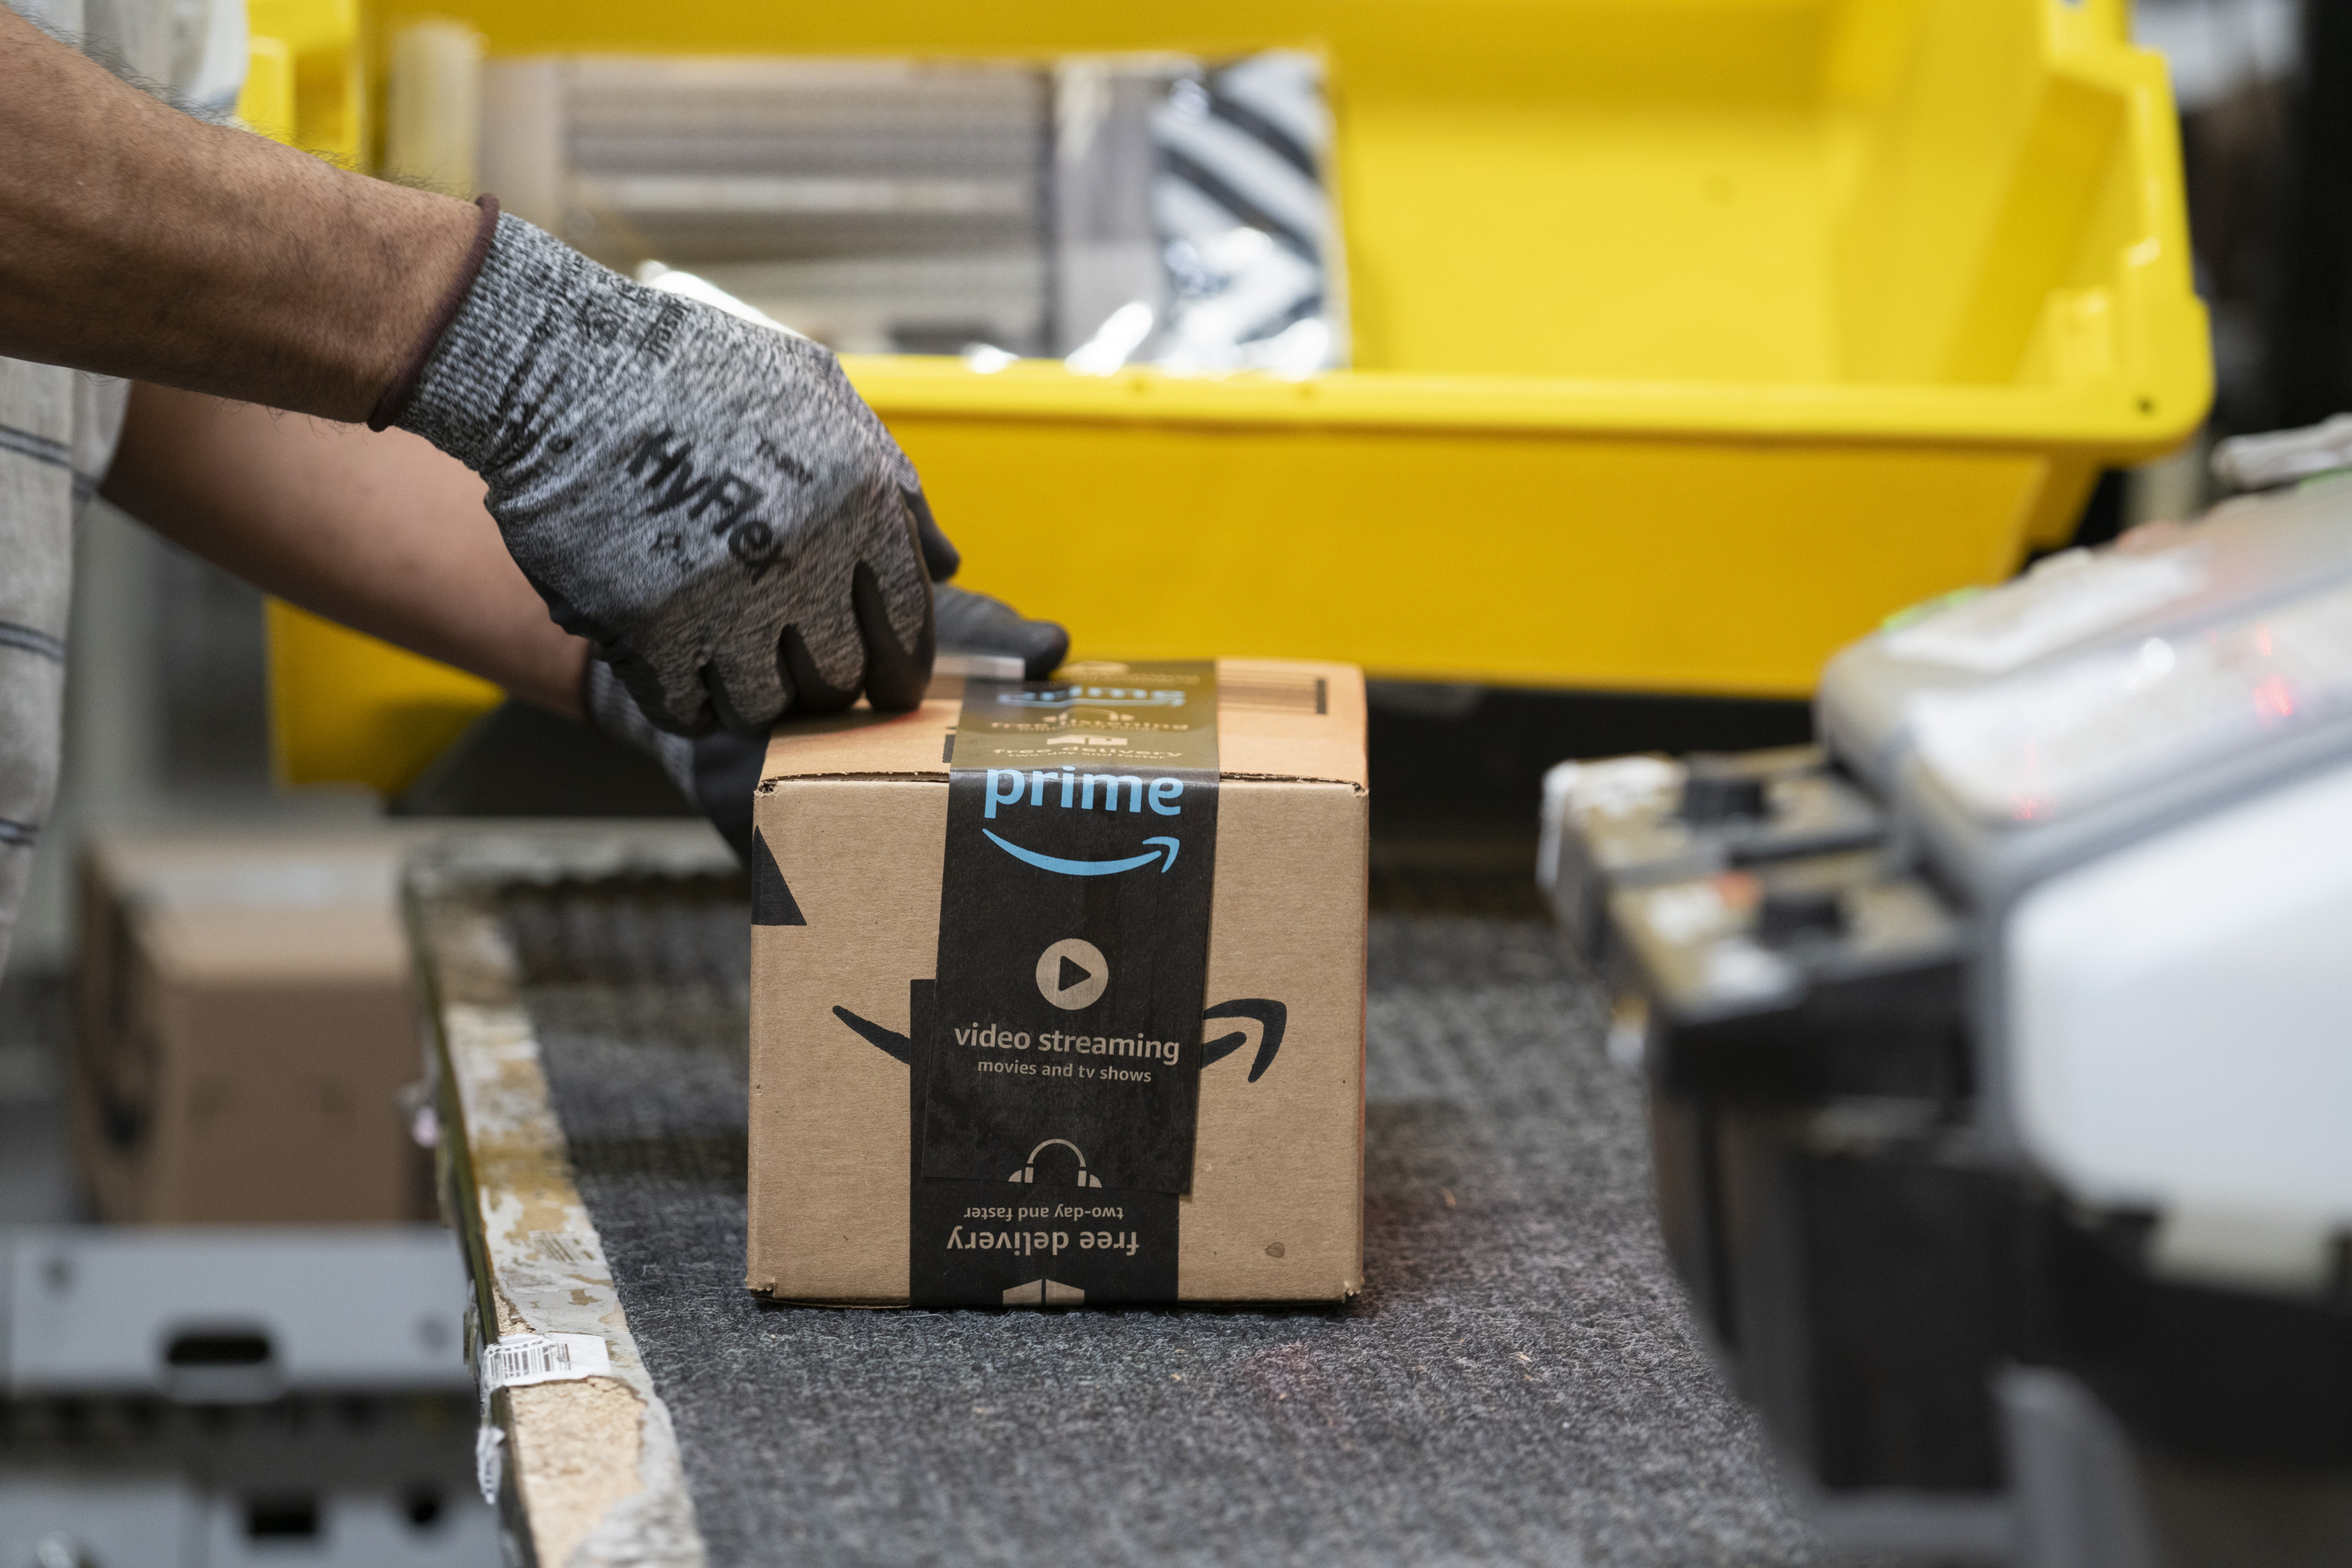 Amazon U.S. online market share estimate cut to 37.7% from 47%